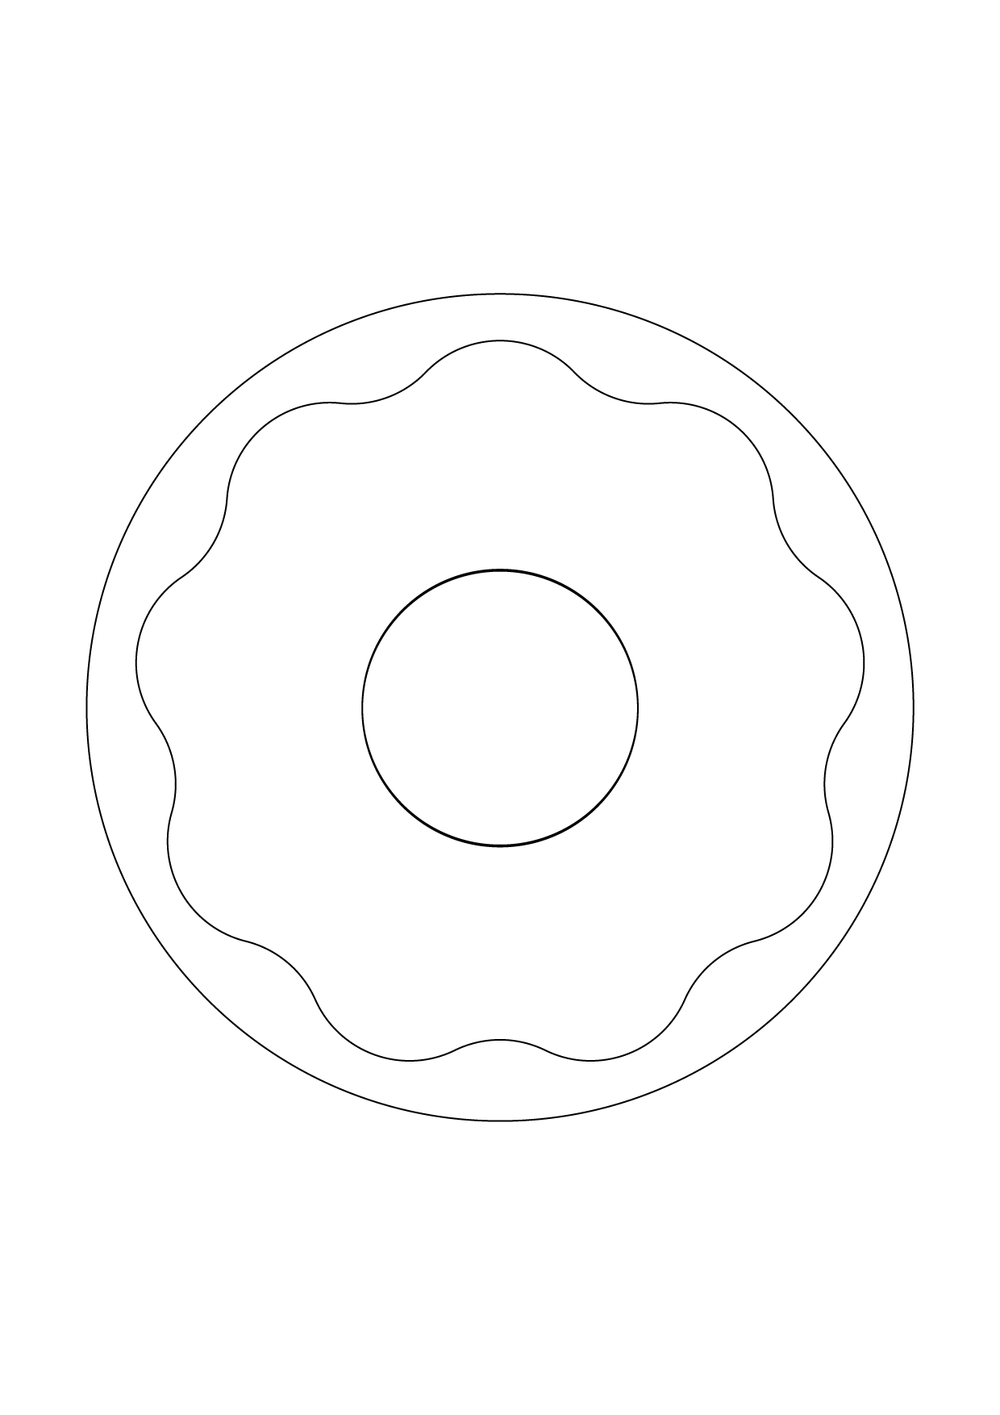 Donut template - print at 100% on A4 paper